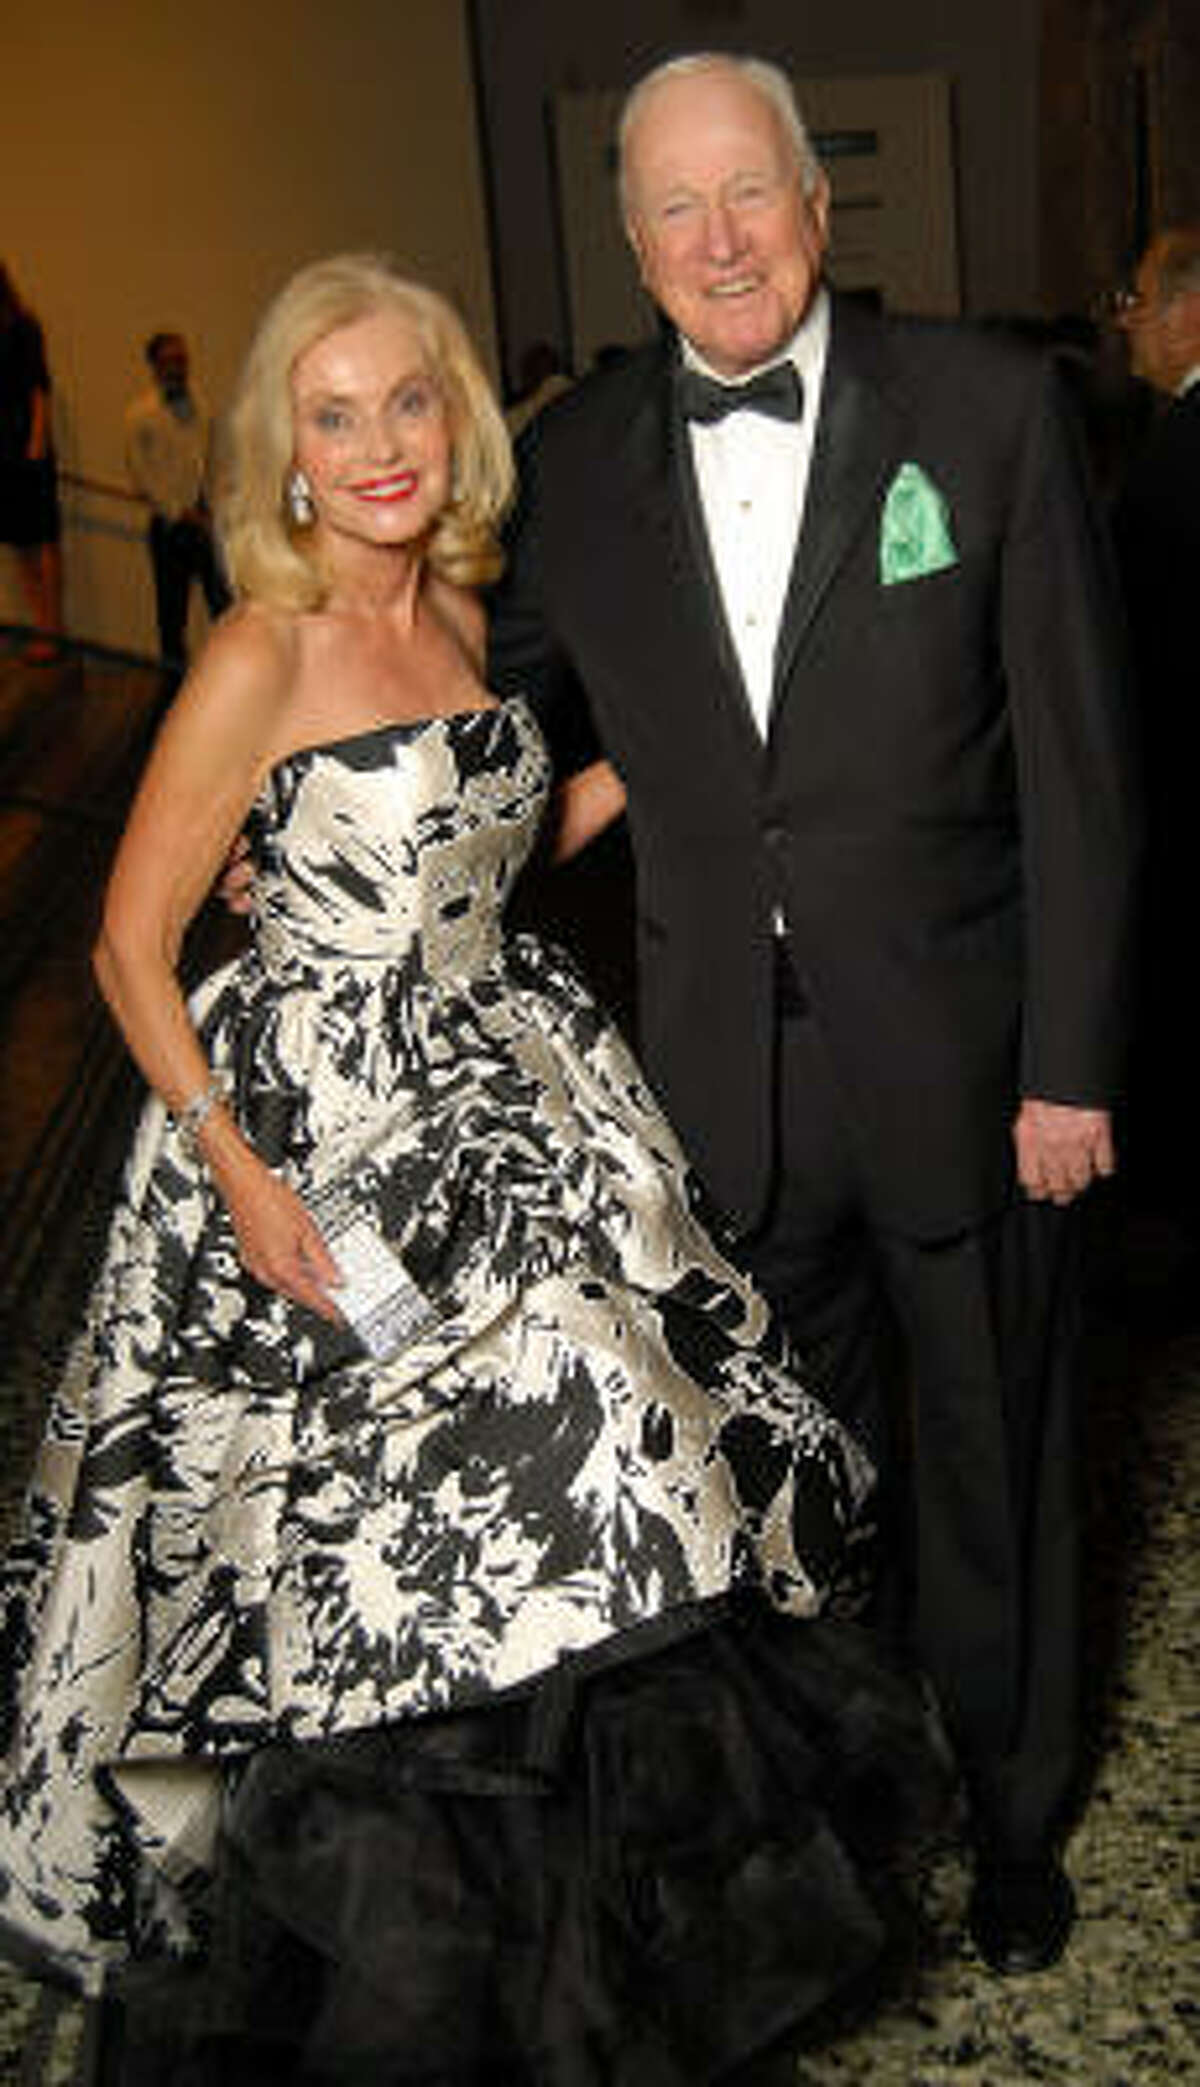 Pat and Dan Breen at the Museum of Fine Arts gala Friday, Oct. 09.